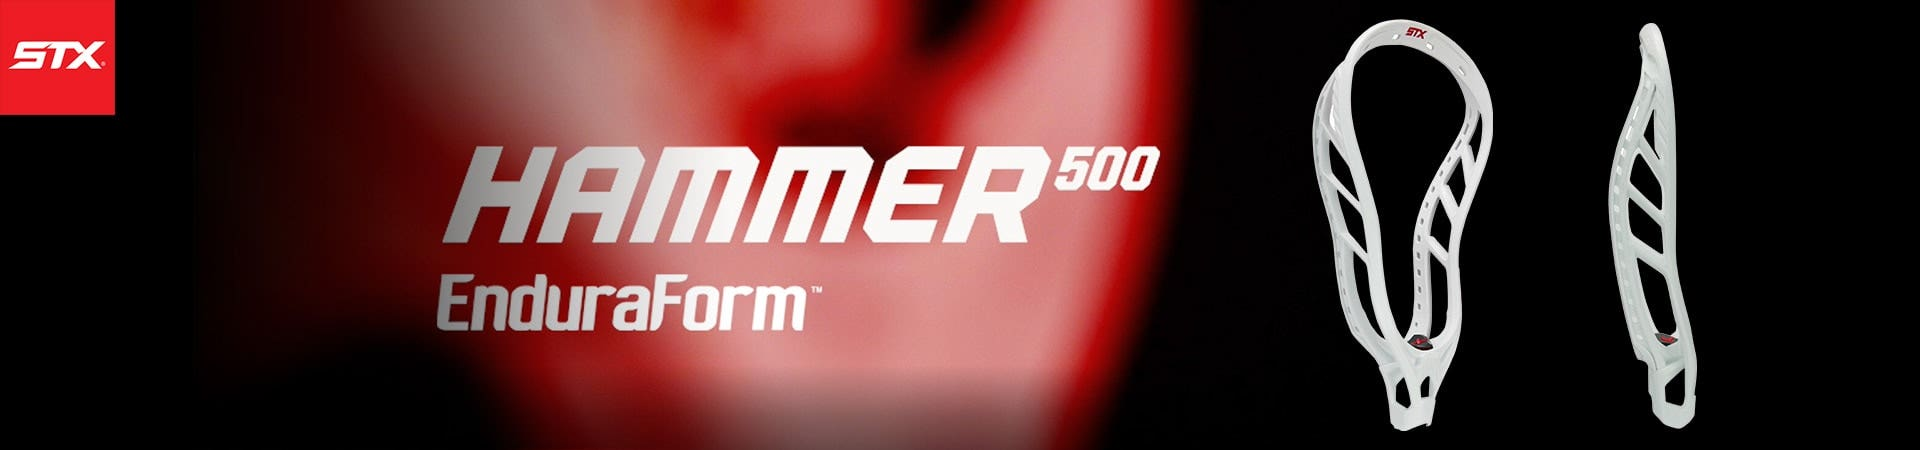 STX Hammer 500 Enduraform Lacrosse Head